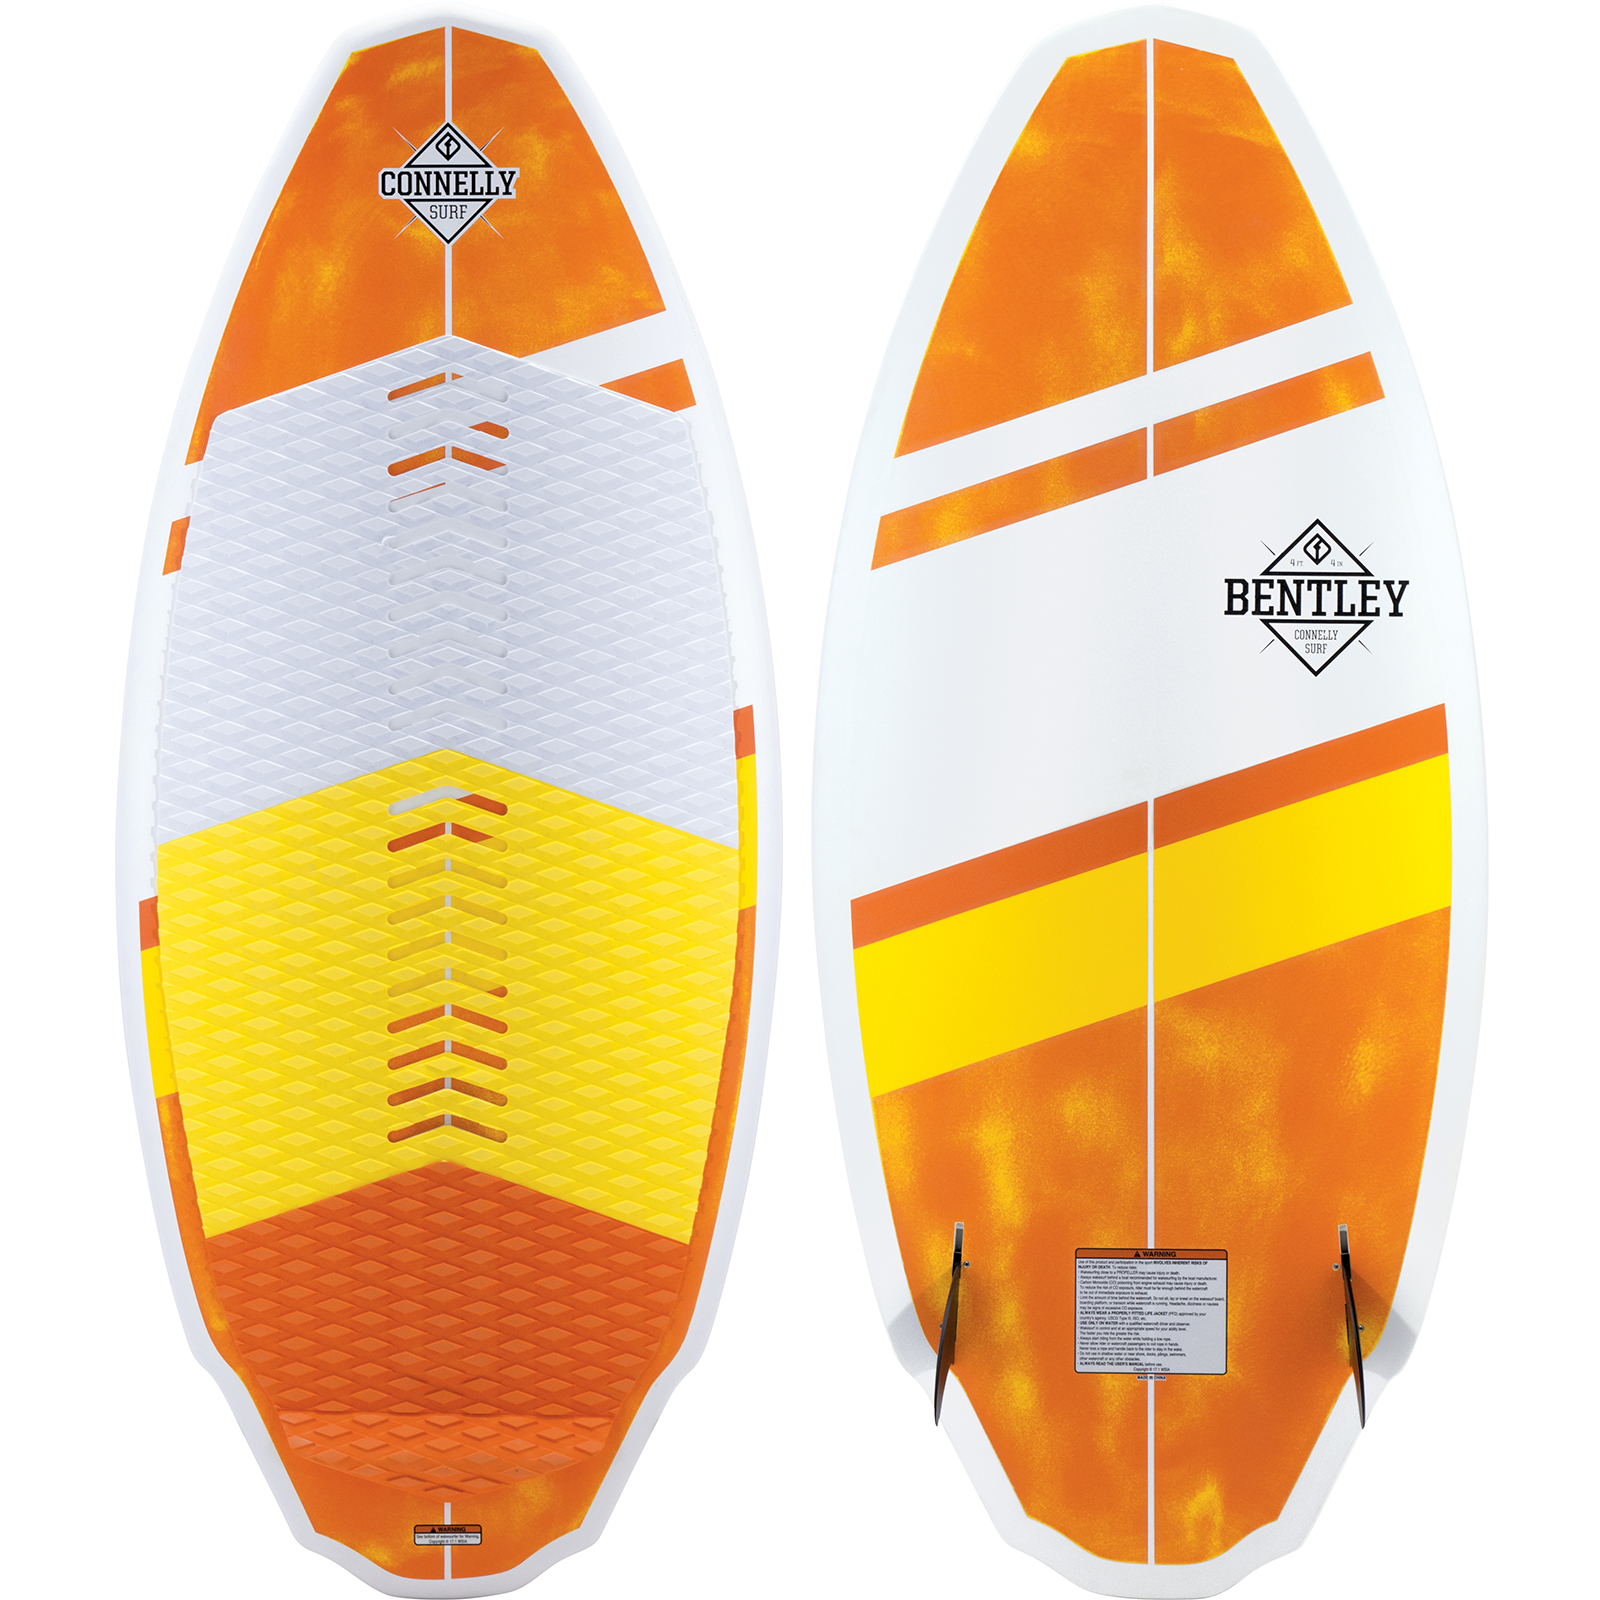 BENTLEY 4.4 WAKESURFER CONNELLY 2018